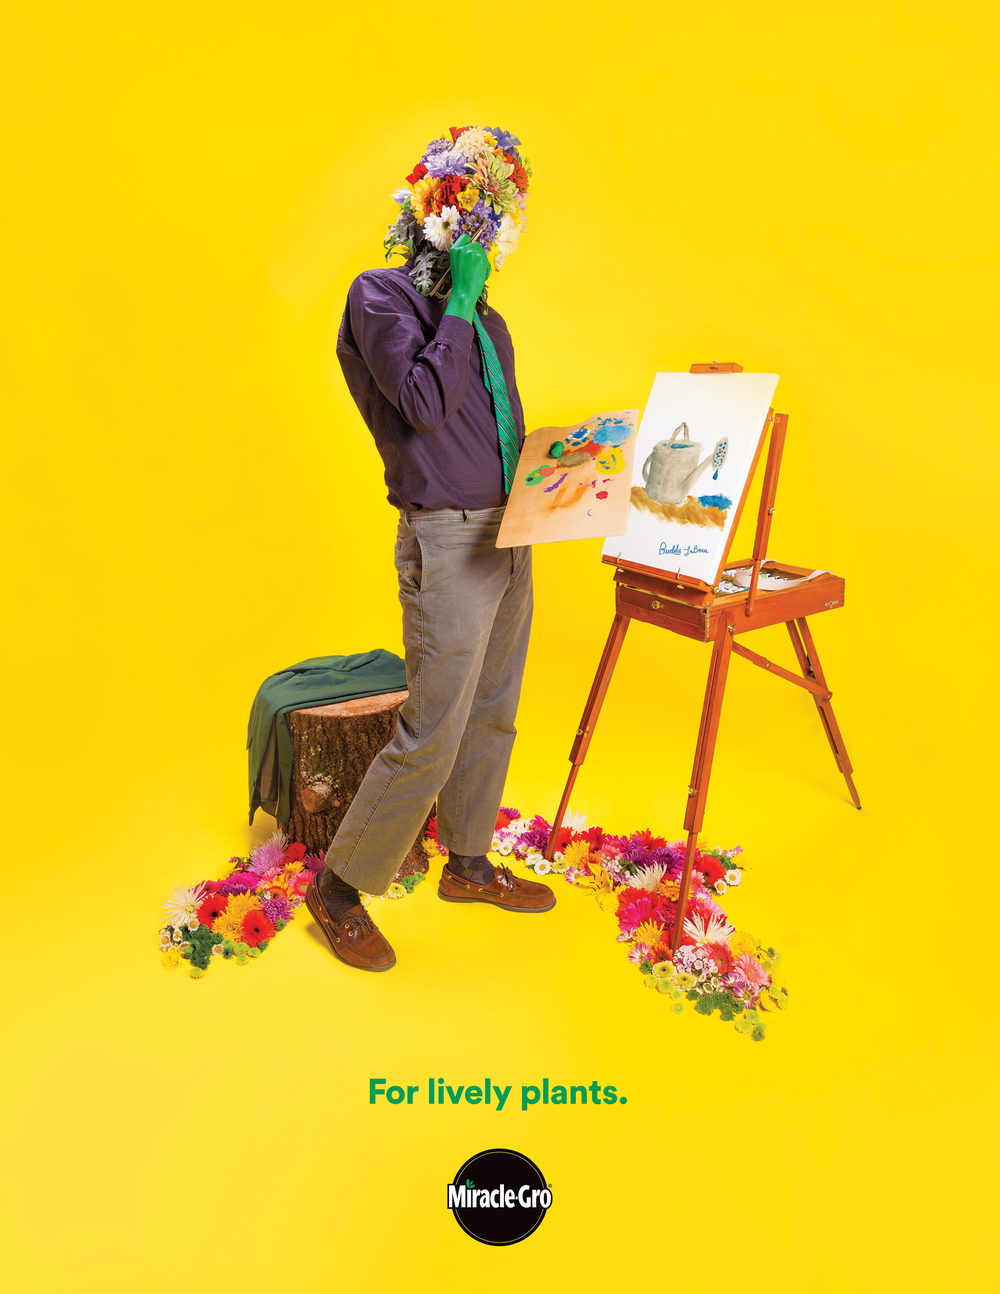 MiracleGro_ForLivelyPlants_Painting-1.jpg